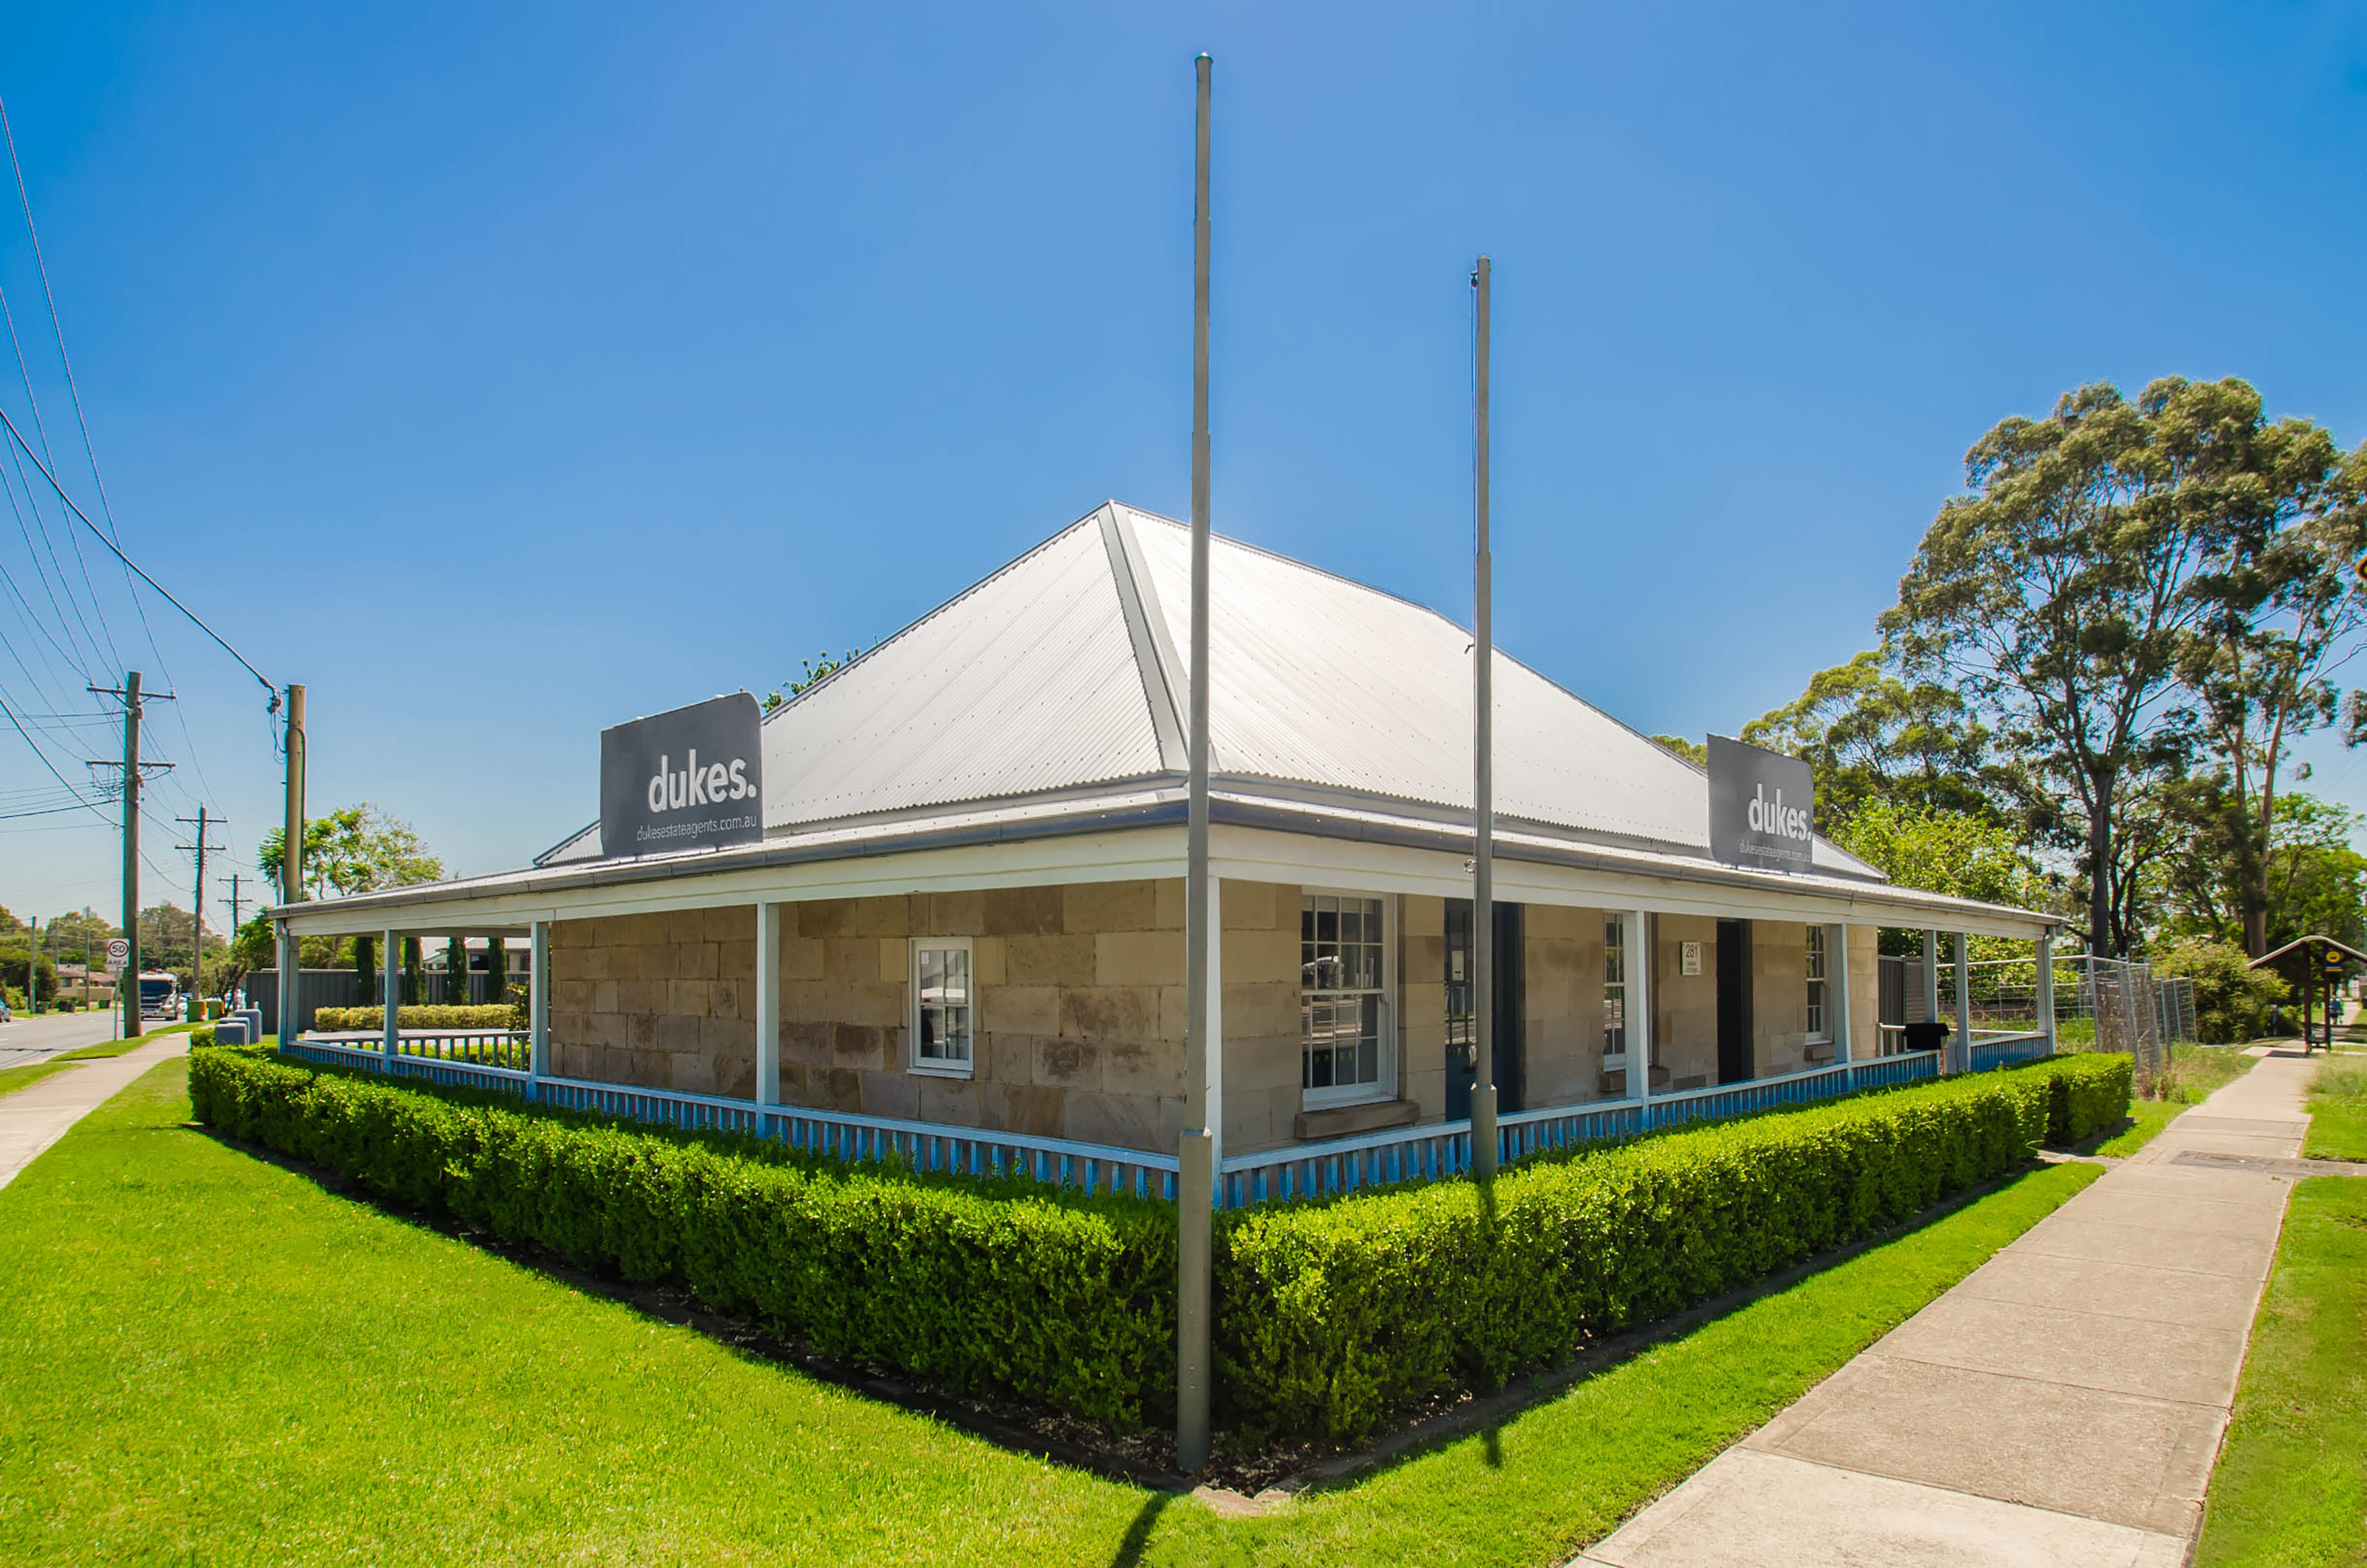 https://assets.boxdice.com.au/dukes-estate-agents/attachments/b87/071/emu_plains_exterior.jpg?1d2143dd7755a61c207630aa719af5f9